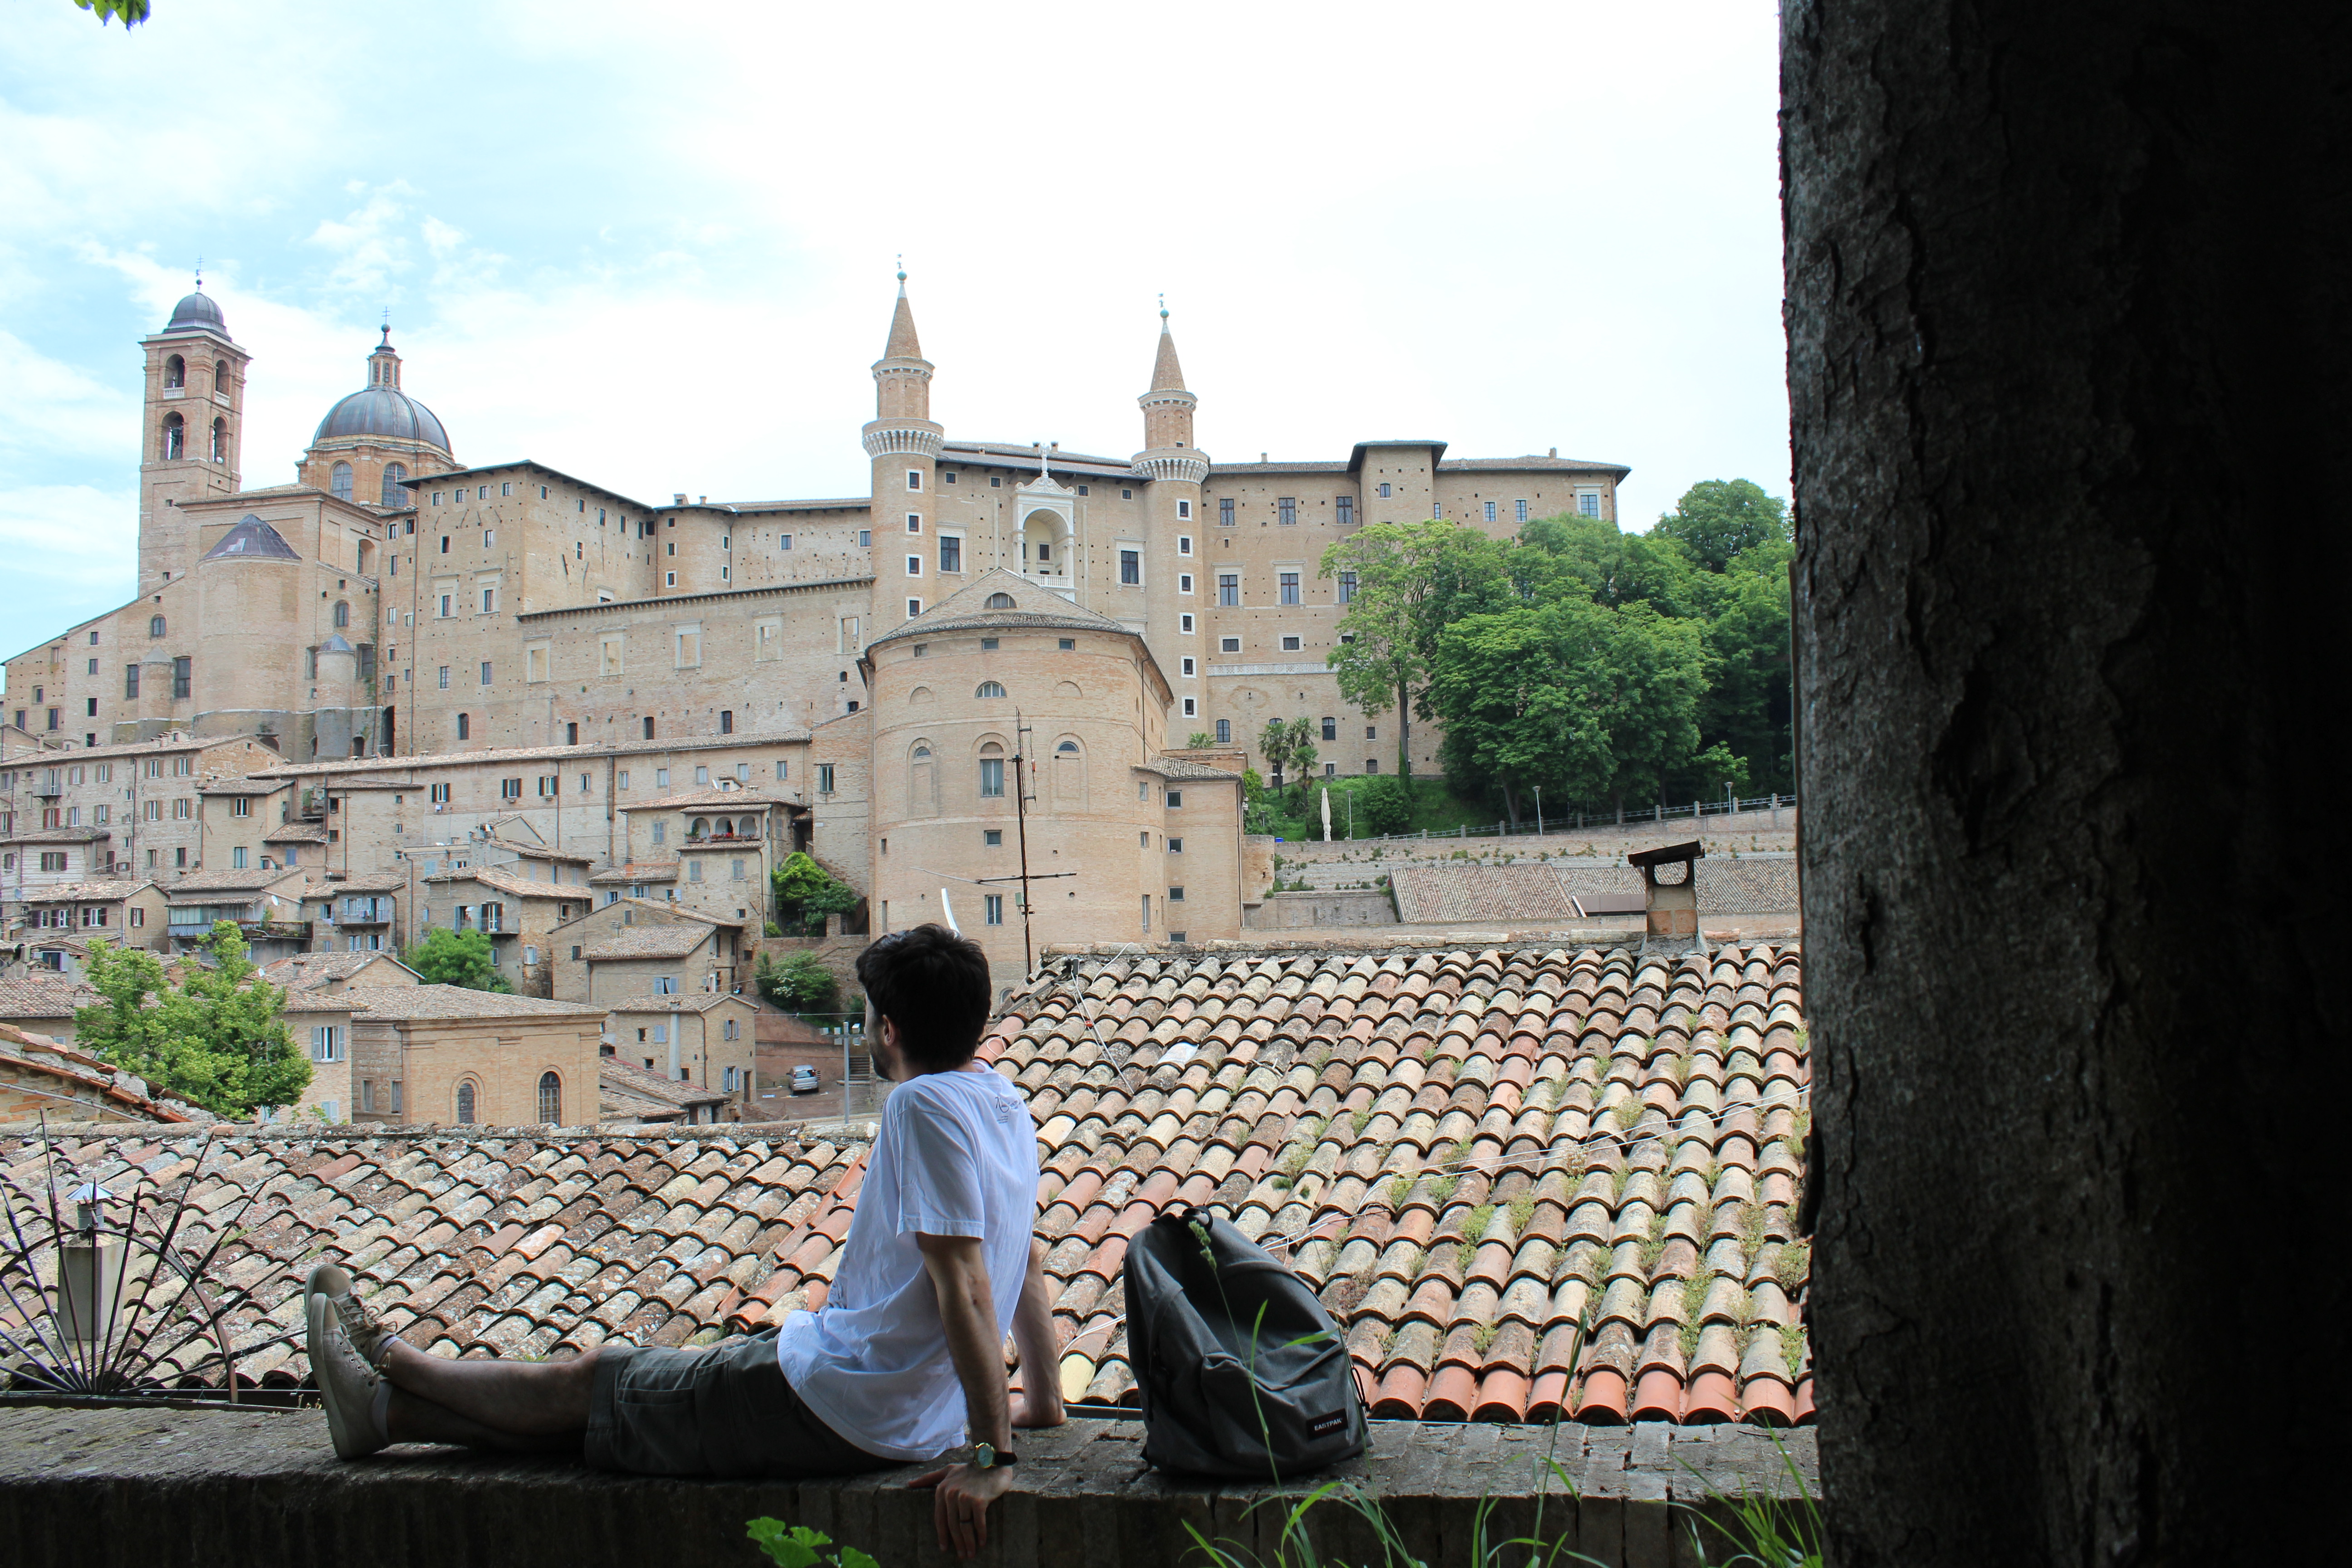 Historic Centre of Urbino. Picture taken by me